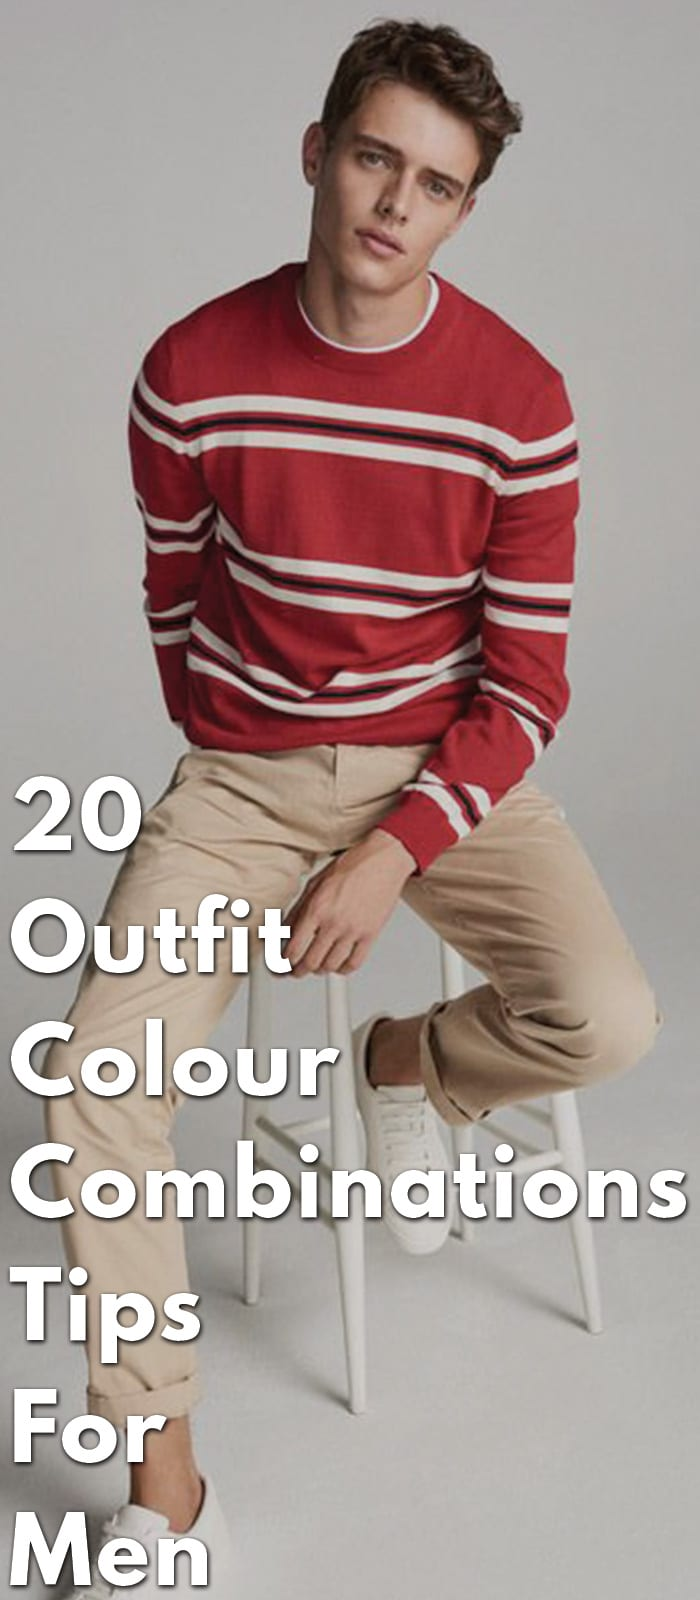 20-Outfit-Colour-Combinations-Tips-For-Men.